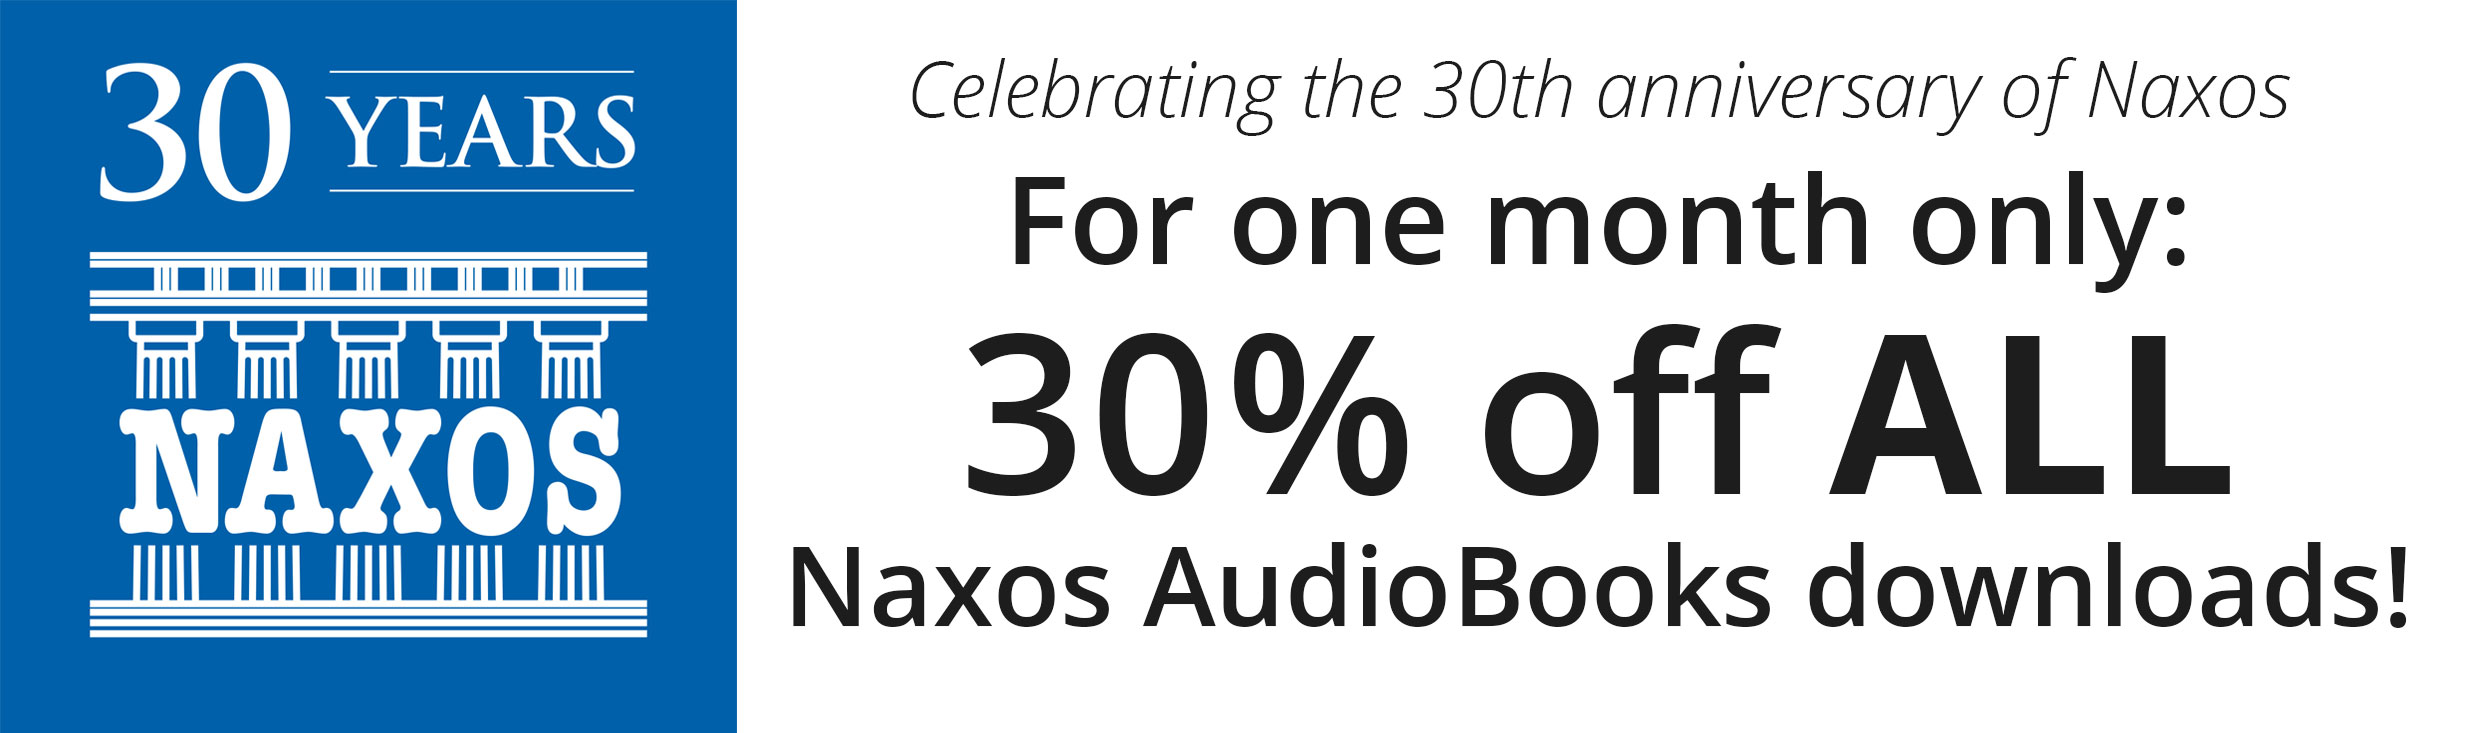 Celebrating the 30th anniversary of Naxos